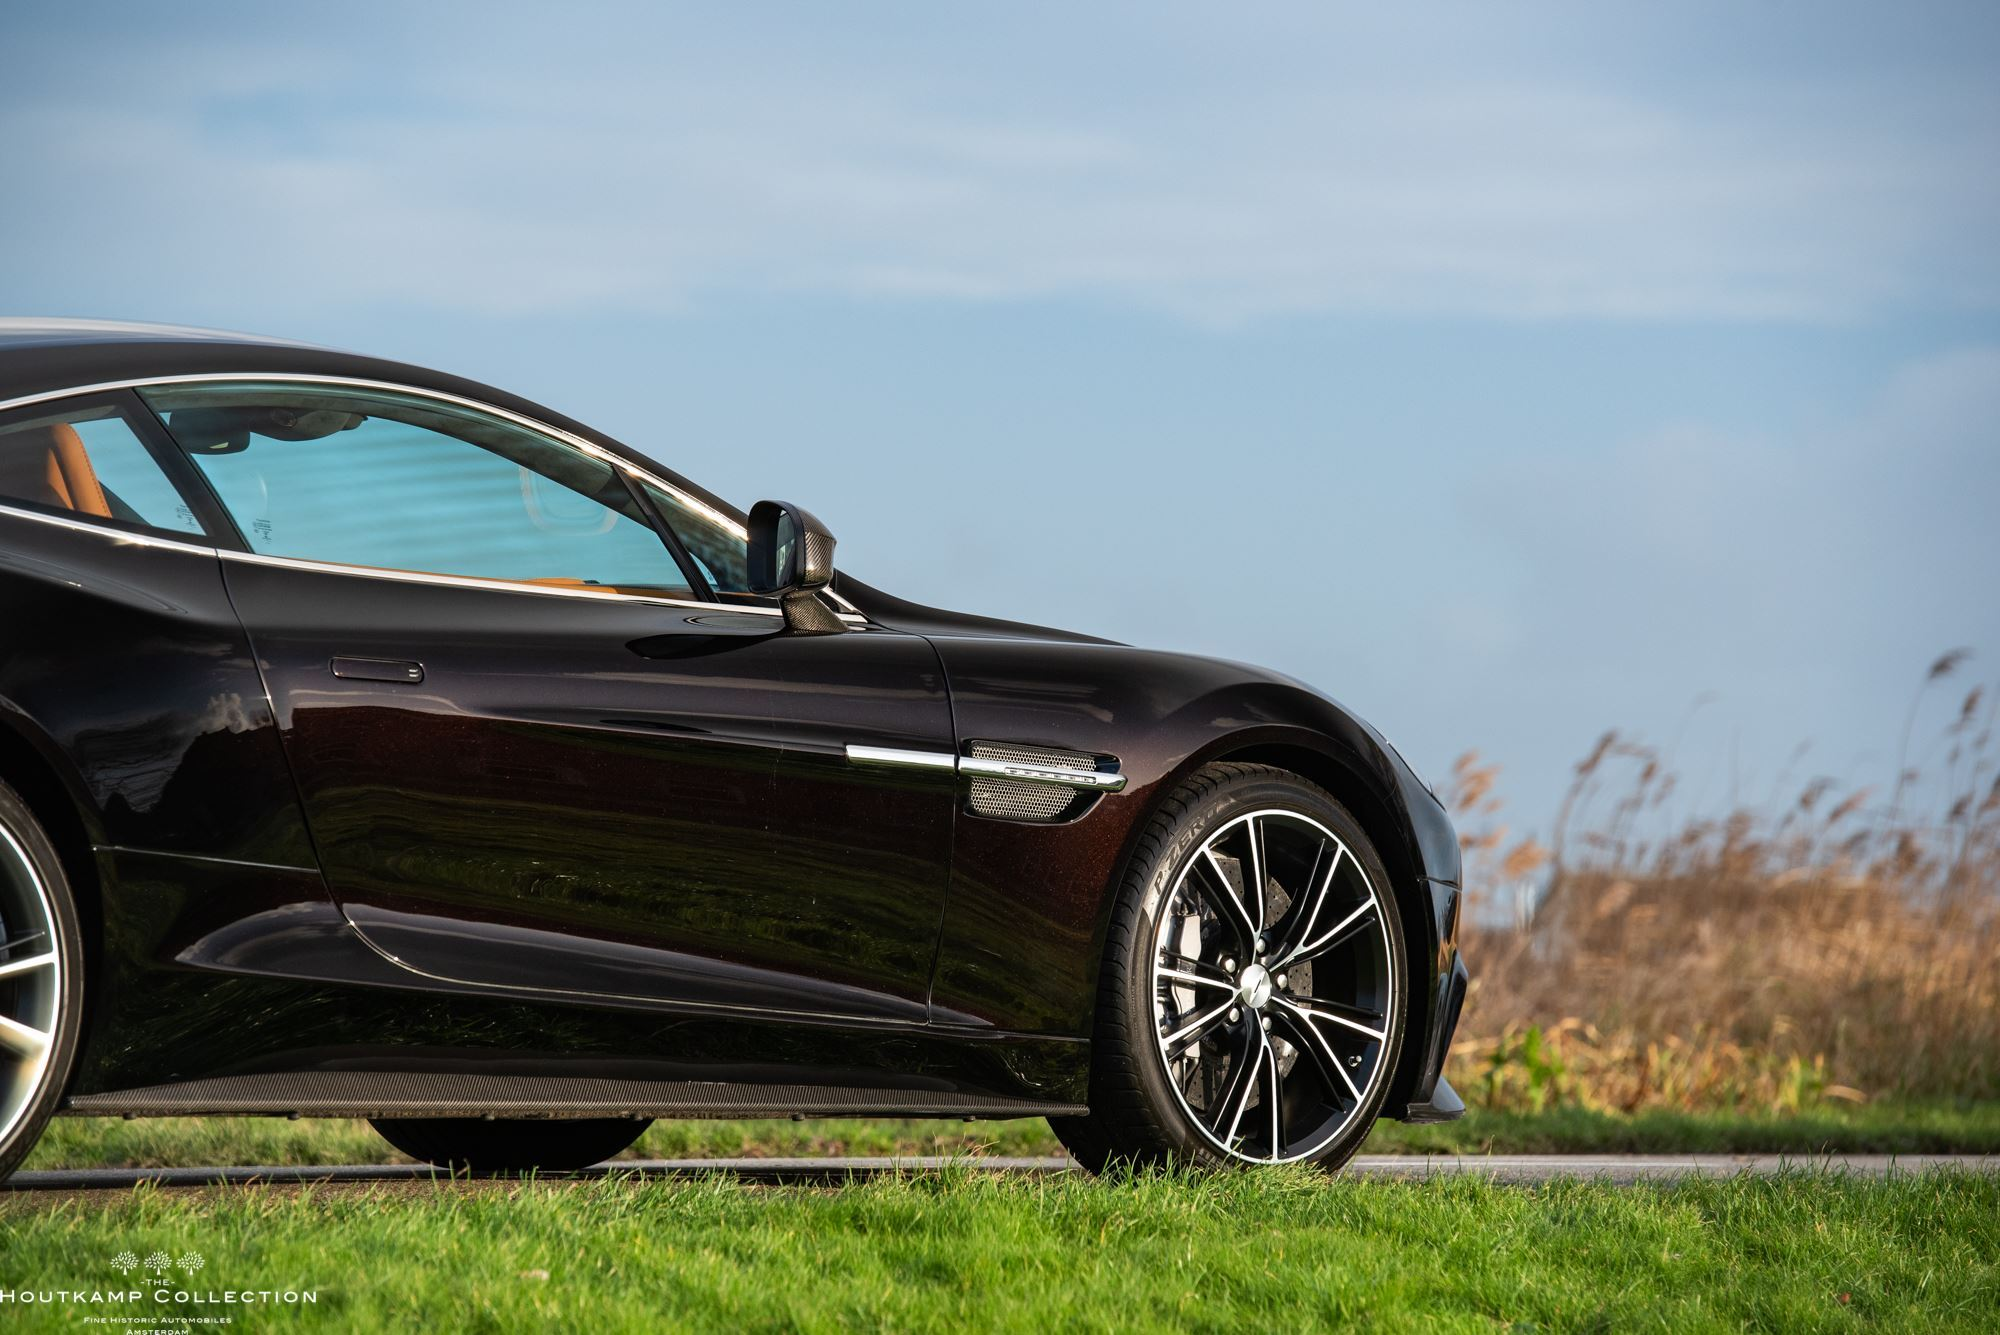 aston martin vanquish - the houtkamp collection